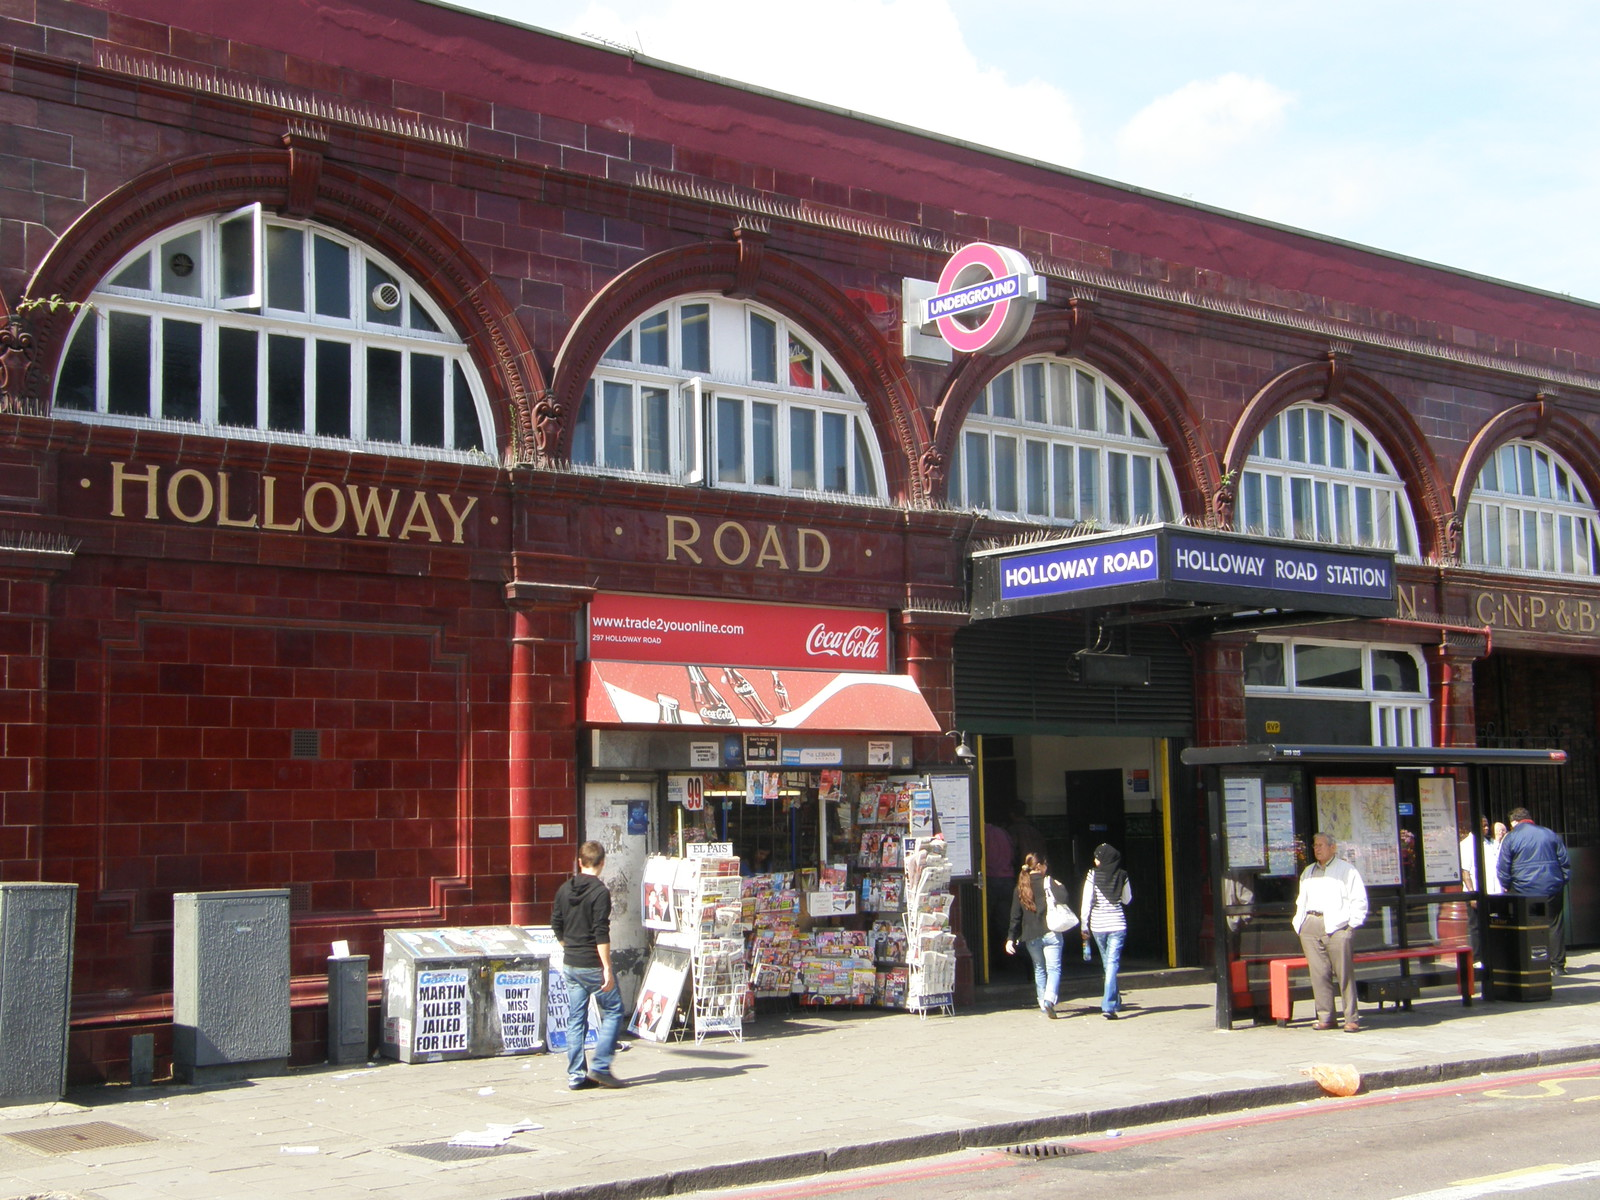 Holloway Road station